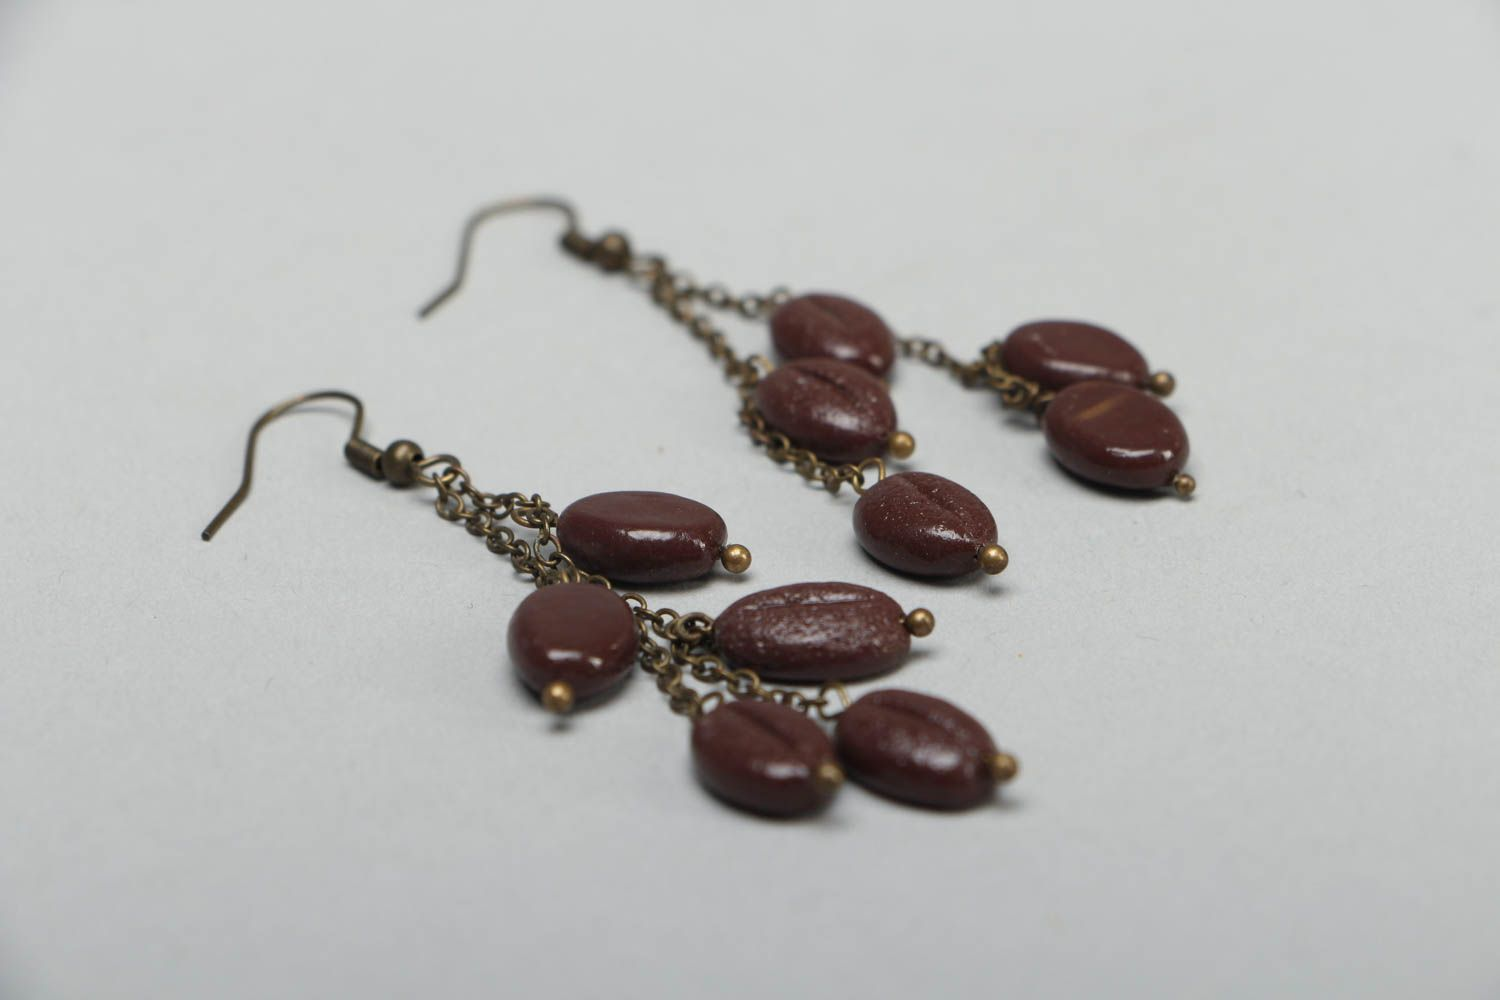 Unusual earrings with plastic charms photo 2